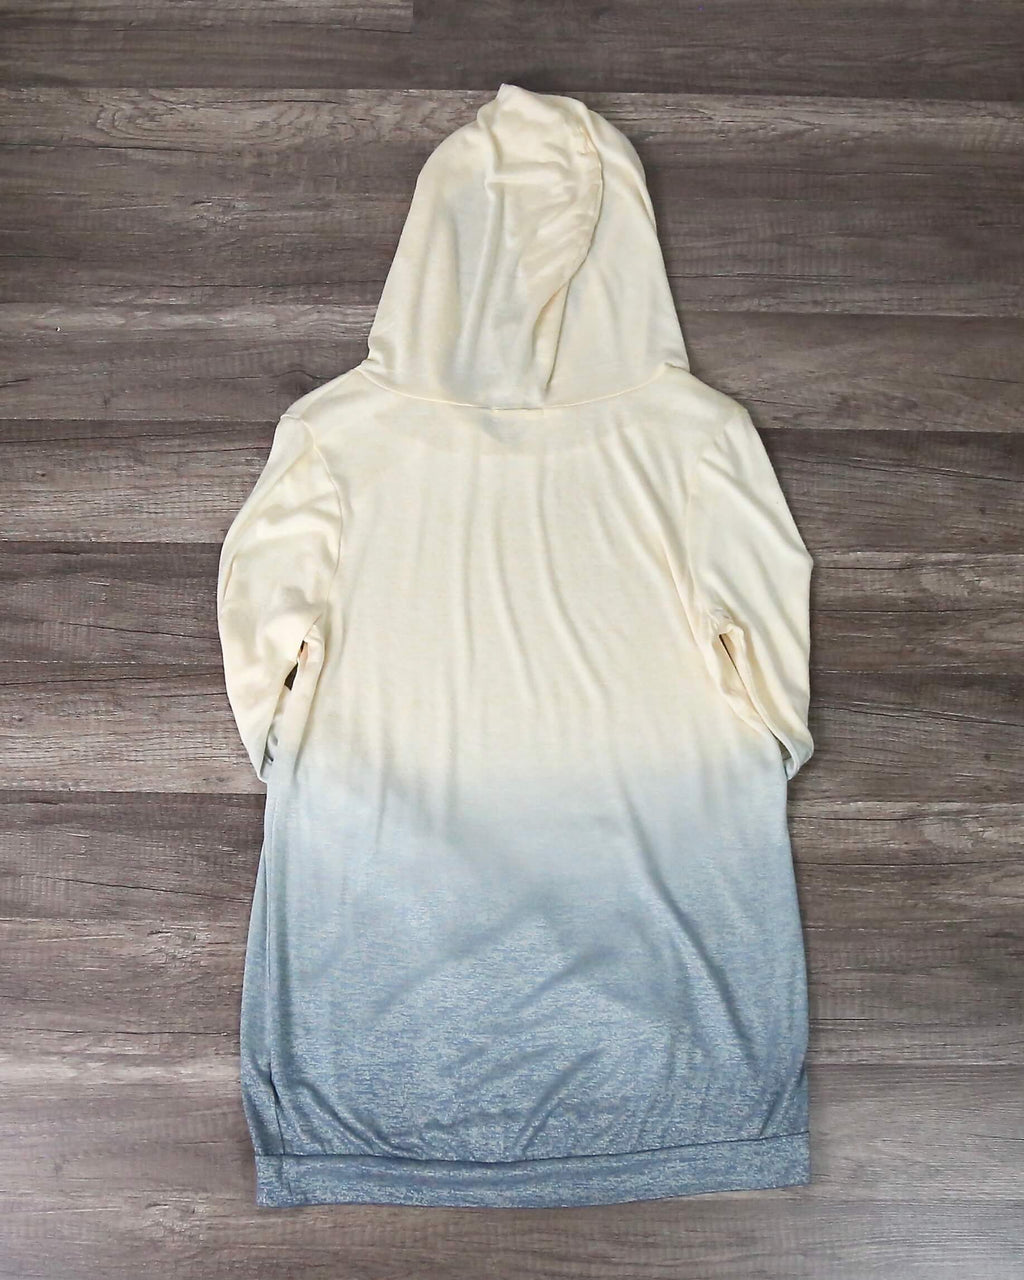 FINAL SALE - Ombre Lightweight Sweatshirt Hoodie in Yellow to Blue